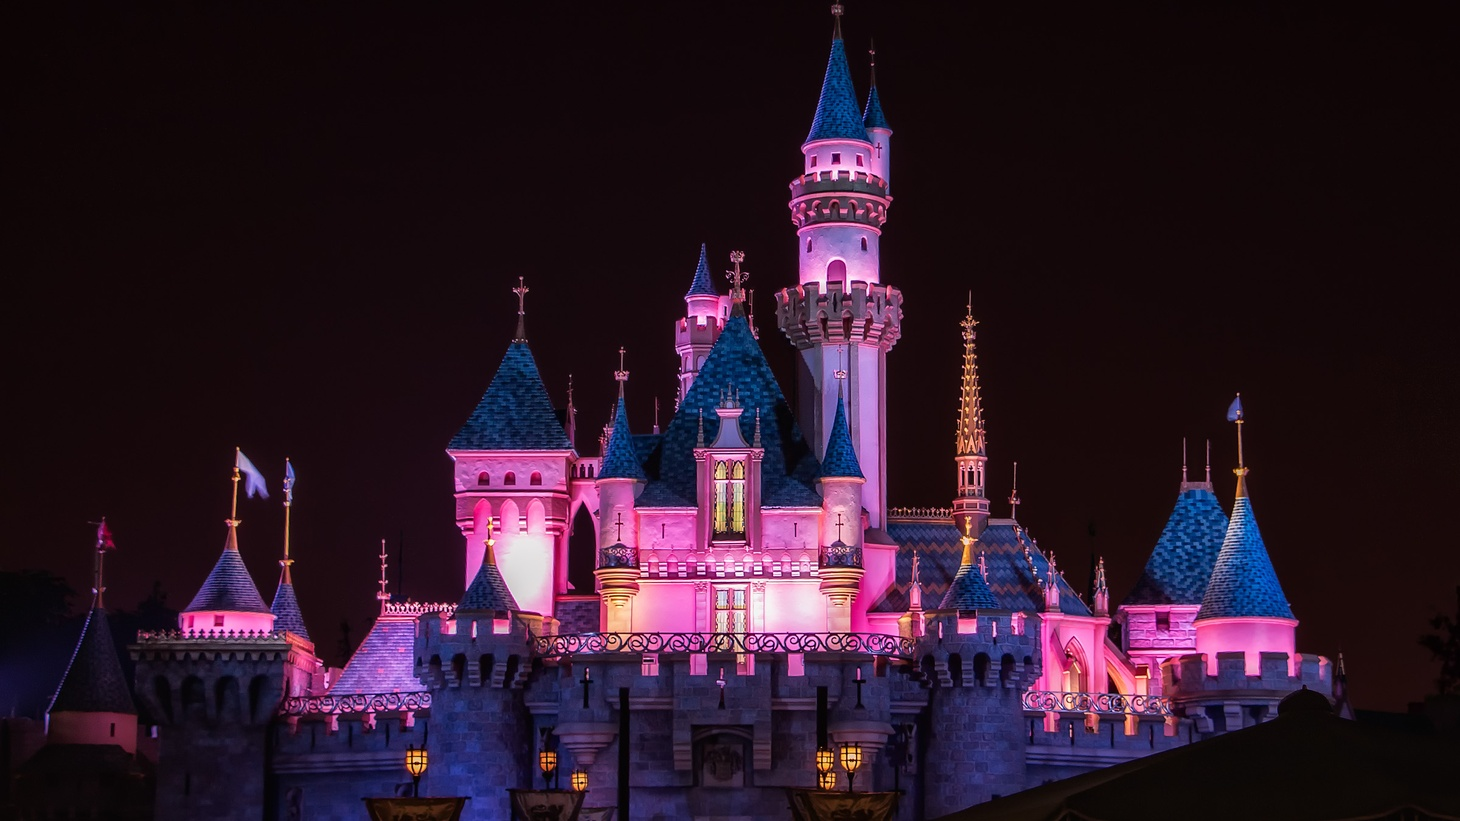 Visiting the 77-foot-high Sleeping Beauty Castle in Disneyland could give you a taste for the castles in Germany.